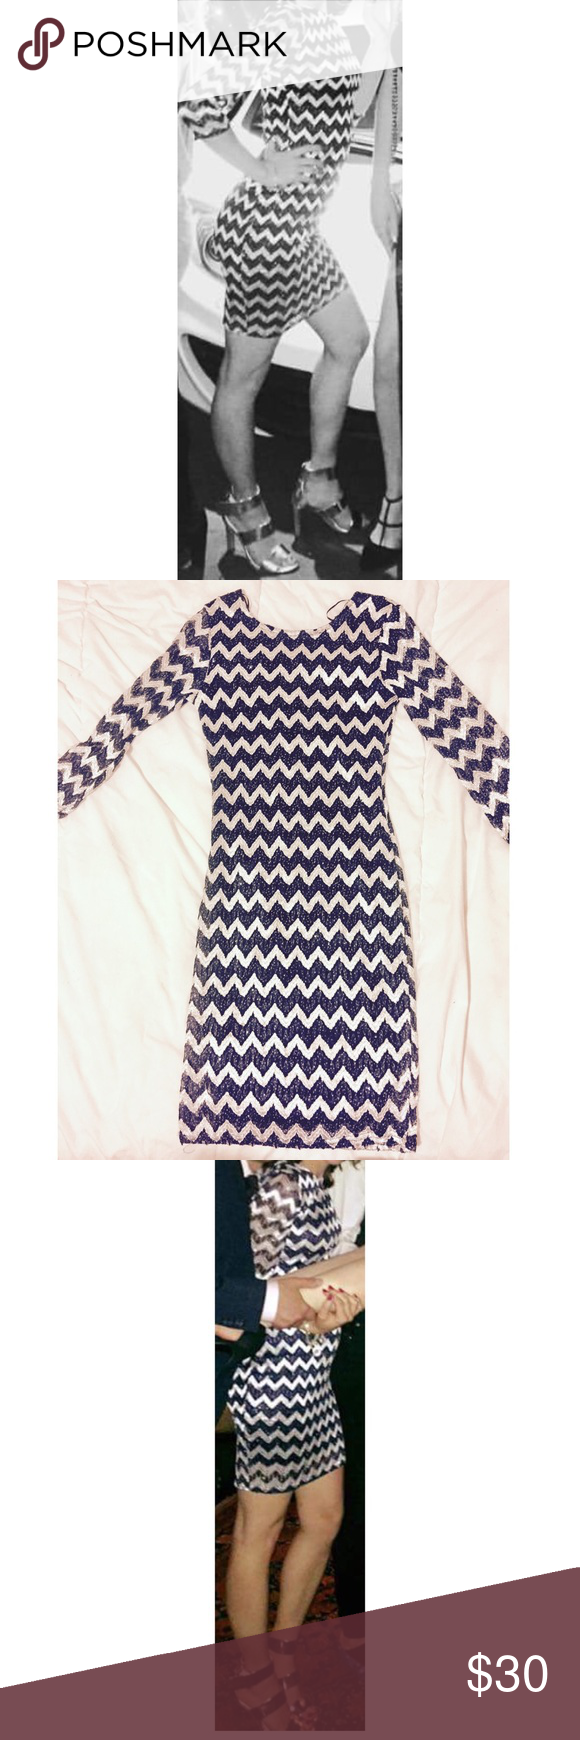 Blue And Silver Zig Zag Design Dress. Beautiful! Just above the knees. EXTREMELY sparkly blue and SILVER zig•zag design striped dress. Too cute!! Only been worn once for a couple of hours, so like new condition. Purchased from LF in LA. LF Dresses Mini